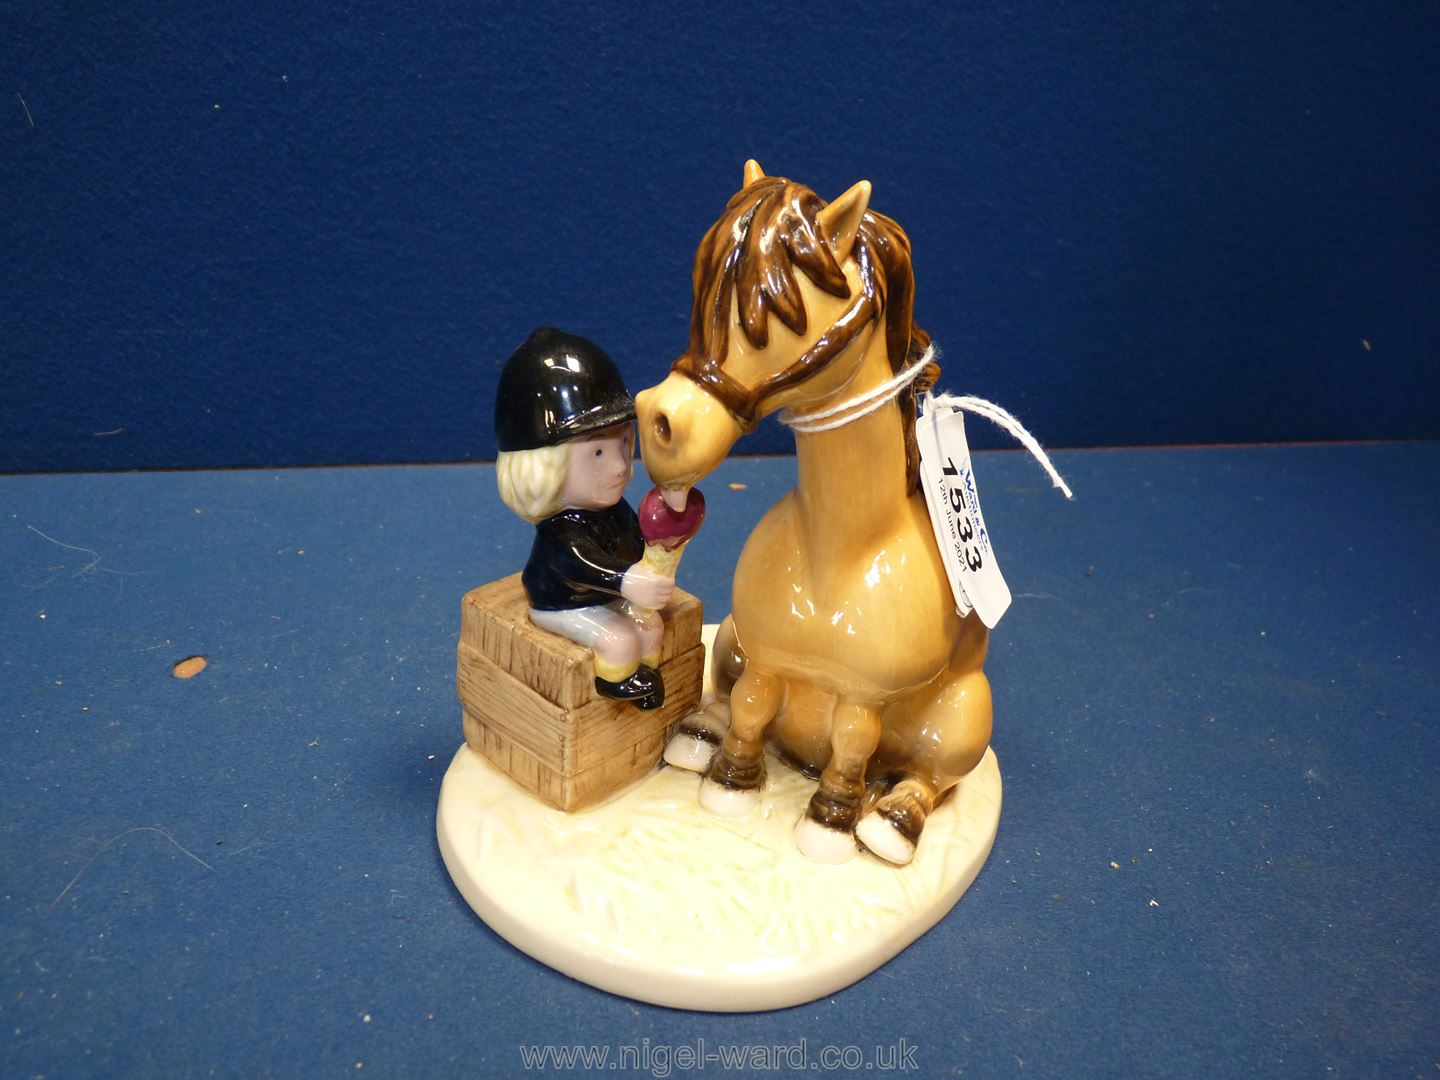 A boxed Royal Doulton Thelwell figure 'Ice Cream Treat', 5 1/4'' tall.